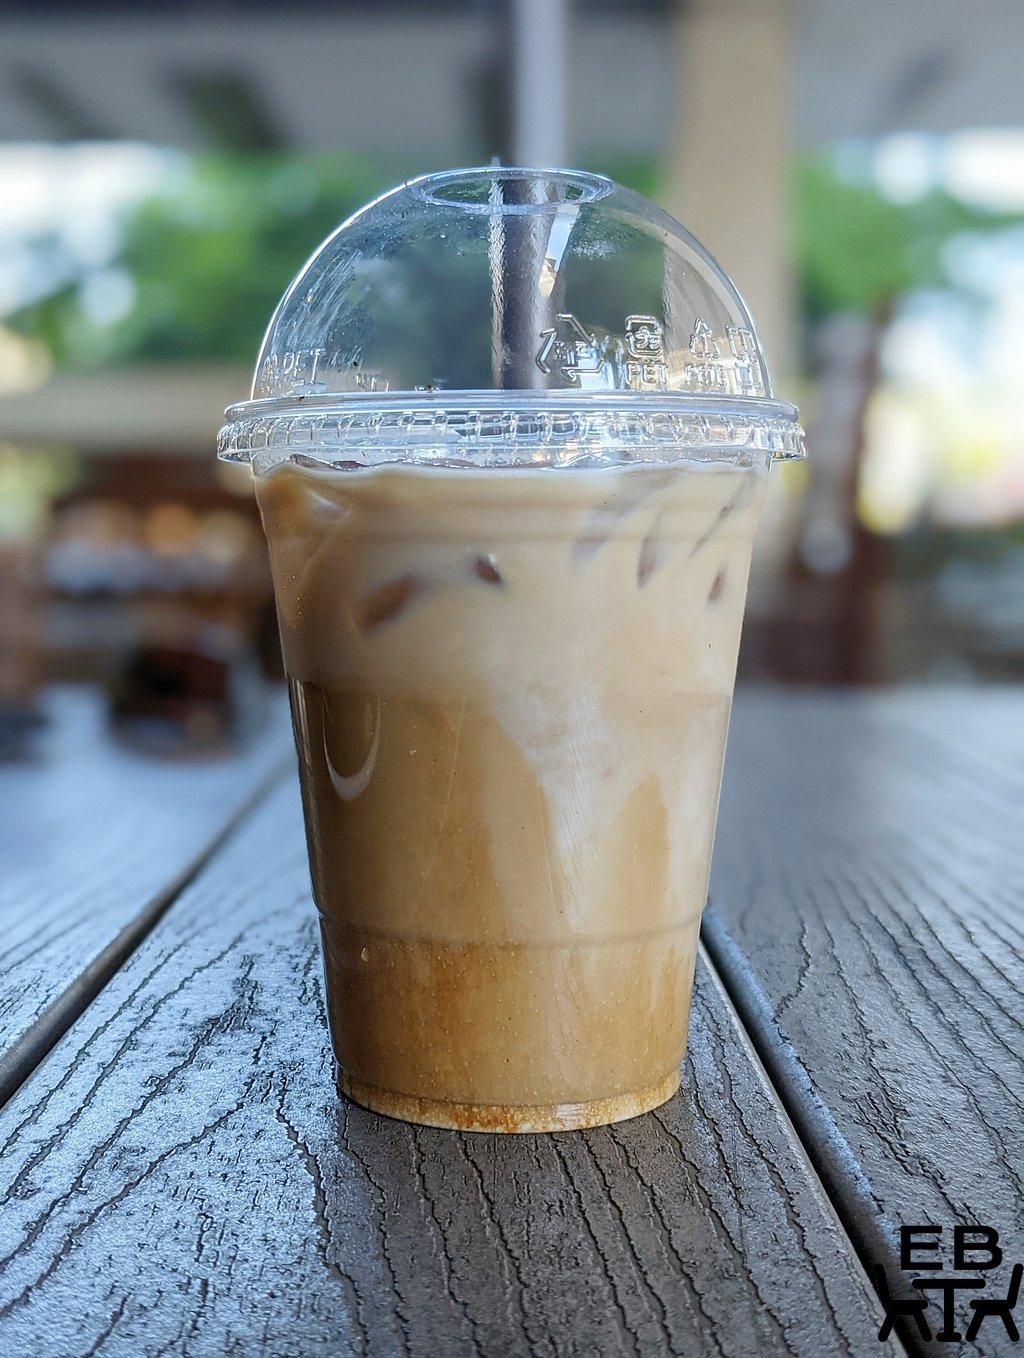 musk cafe and bar iced latte